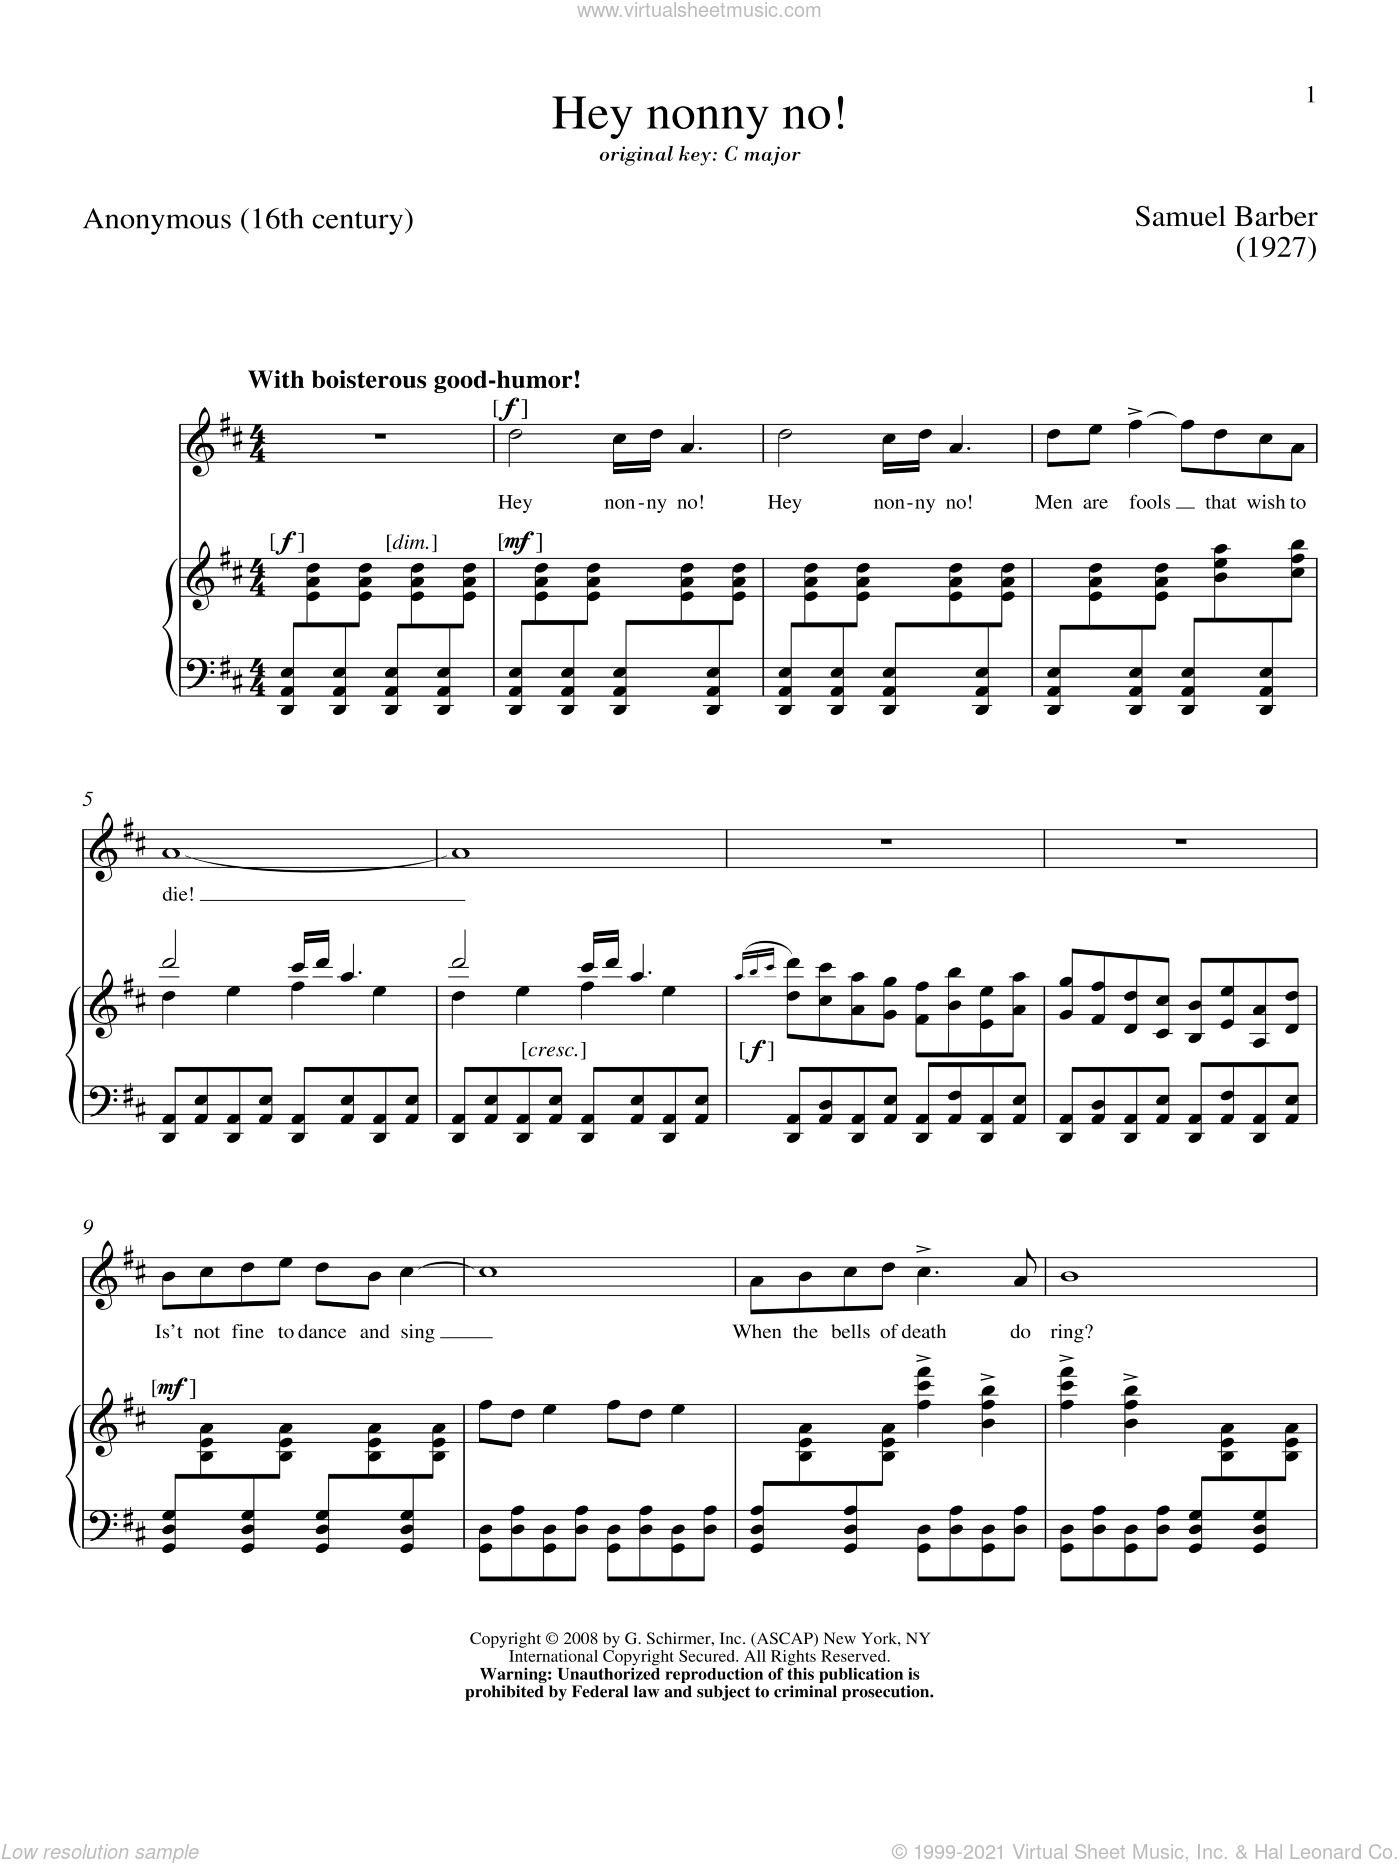 Hey Nonny-No! sheet music for voice and piano (High ) by Samuel Barber. Score Image Preview.